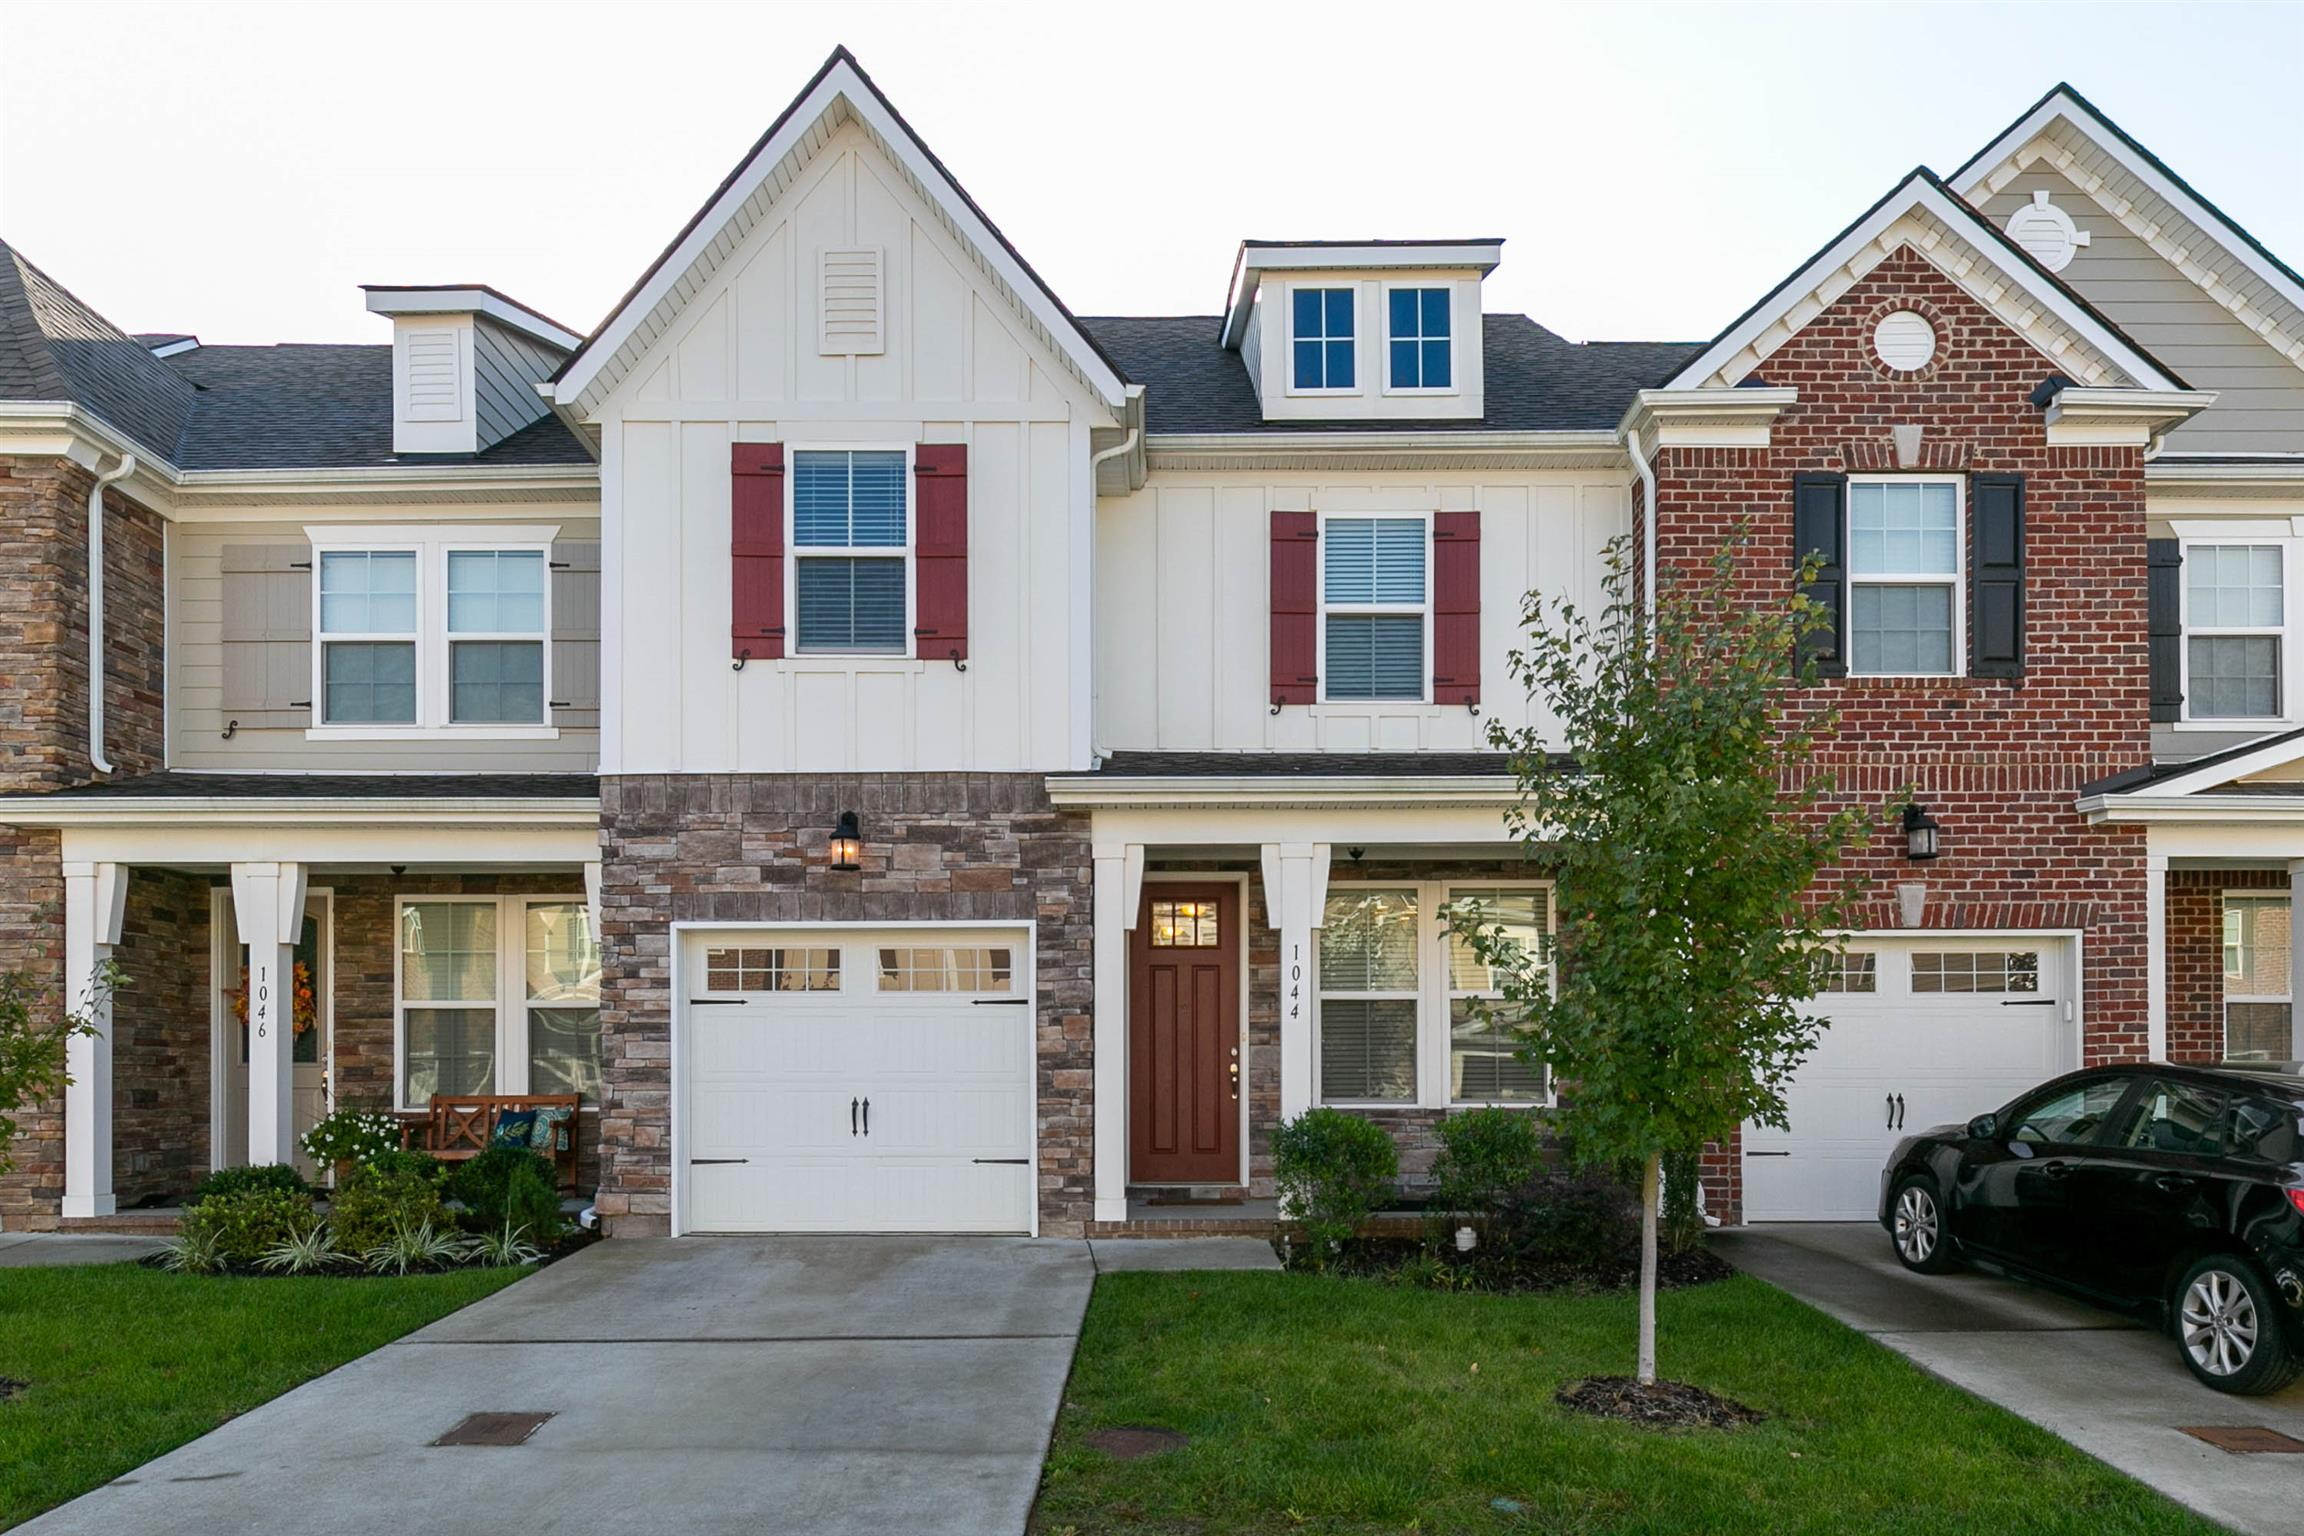 $259,900 - 3Br/3Ba -  for Sale in Nichols Vale, Mount Juliet